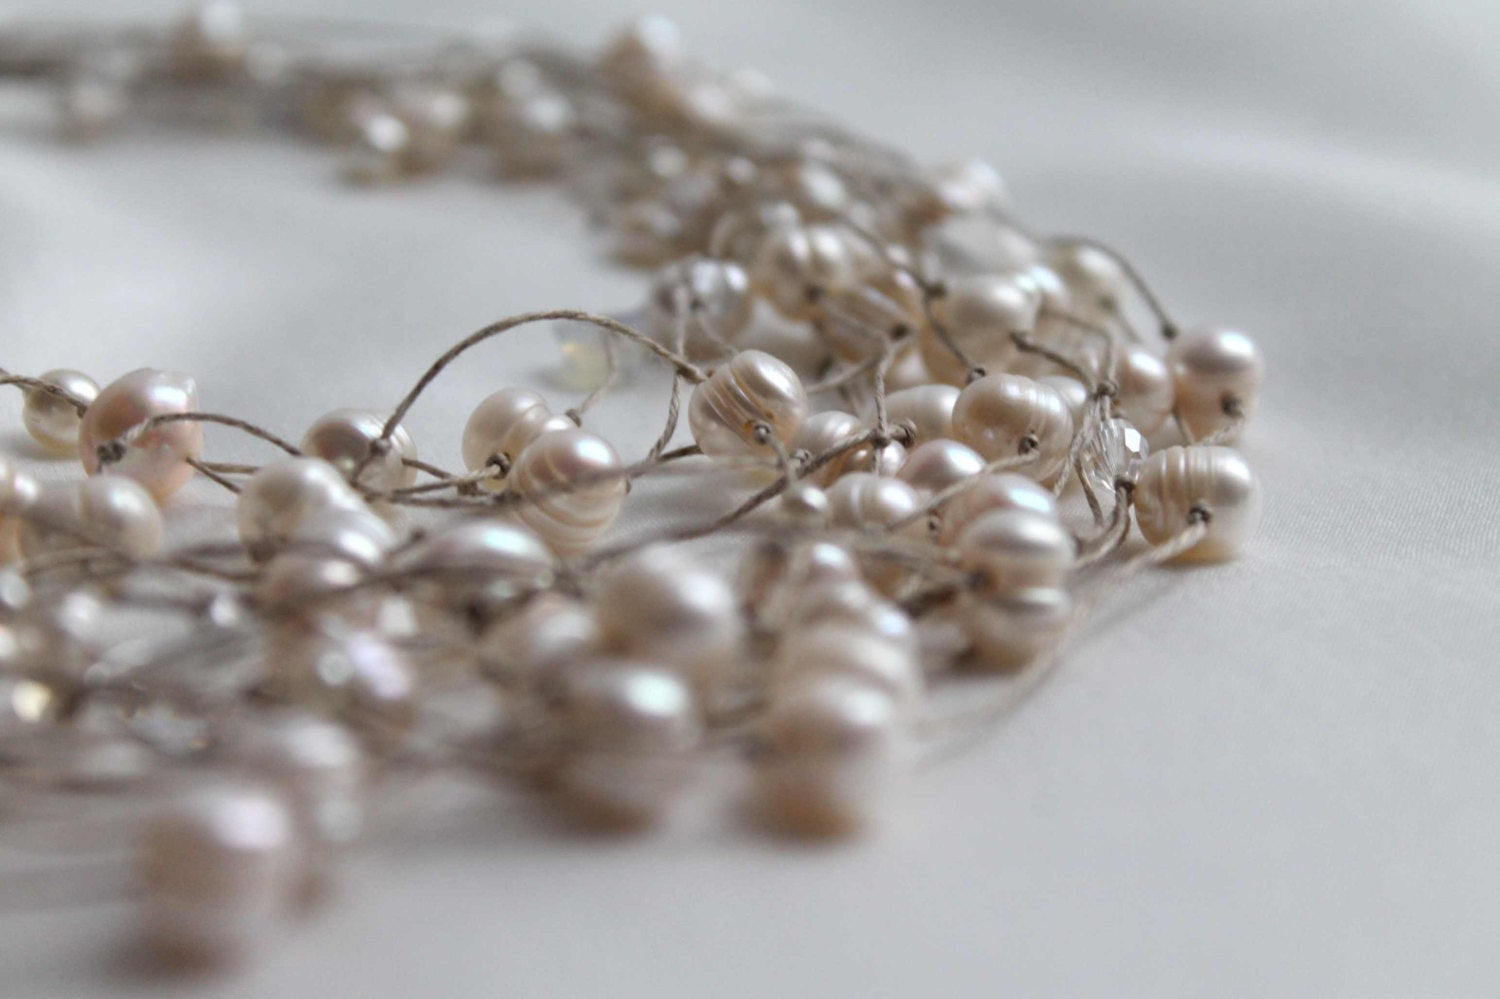 Pearl Necklace / Wedding Necklace  / Multi Strand Pearl Jewelry / Bridal Bridesmaids  / Gift For Her / Valentines